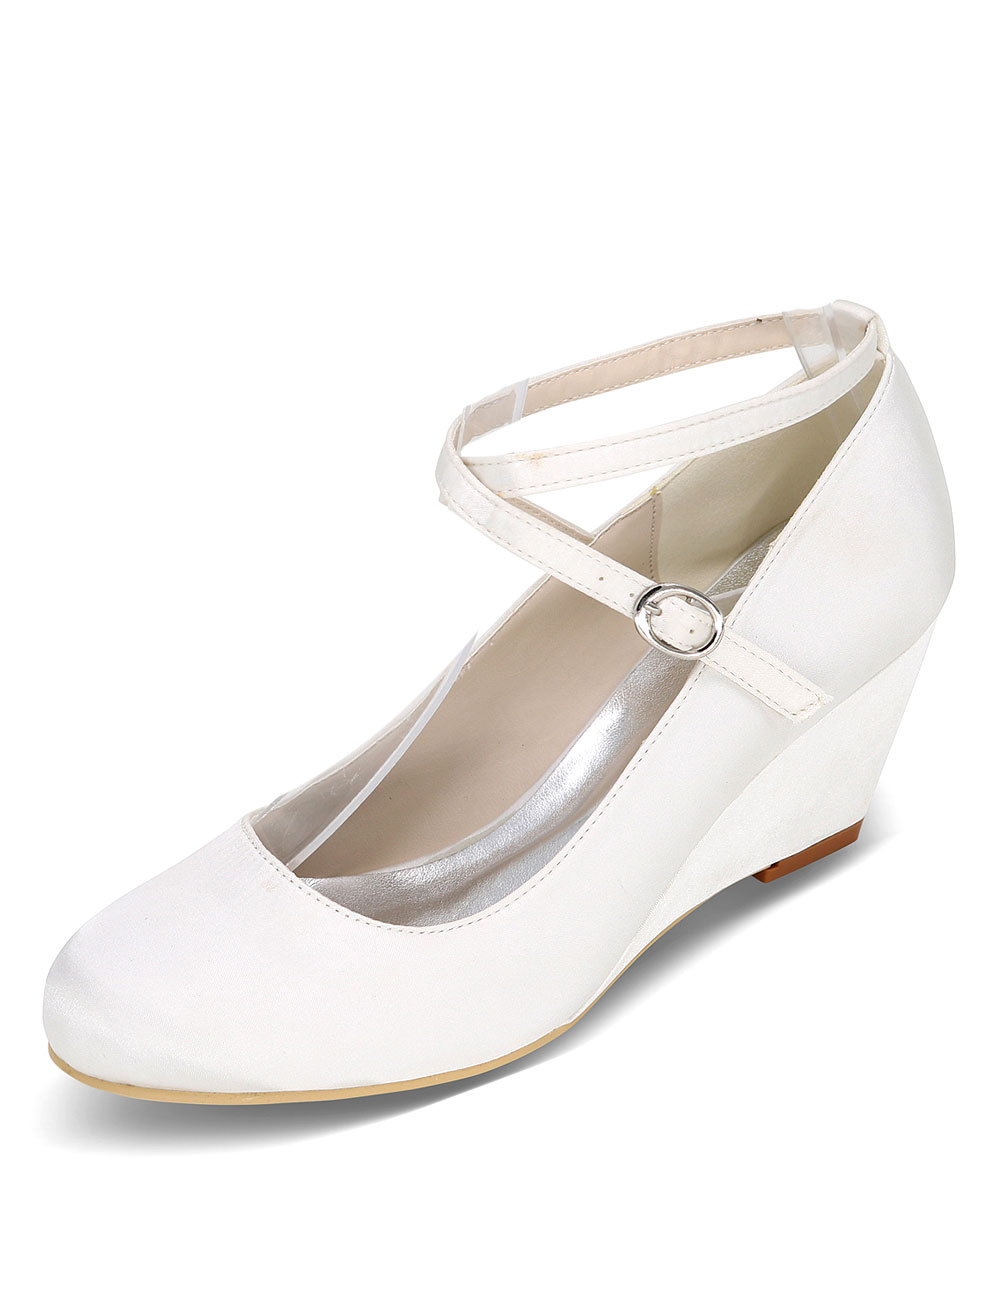 White Wedding Shoes Wedge Heel Criss Cross Mother Shoes Satin Wedding Guest Shoes